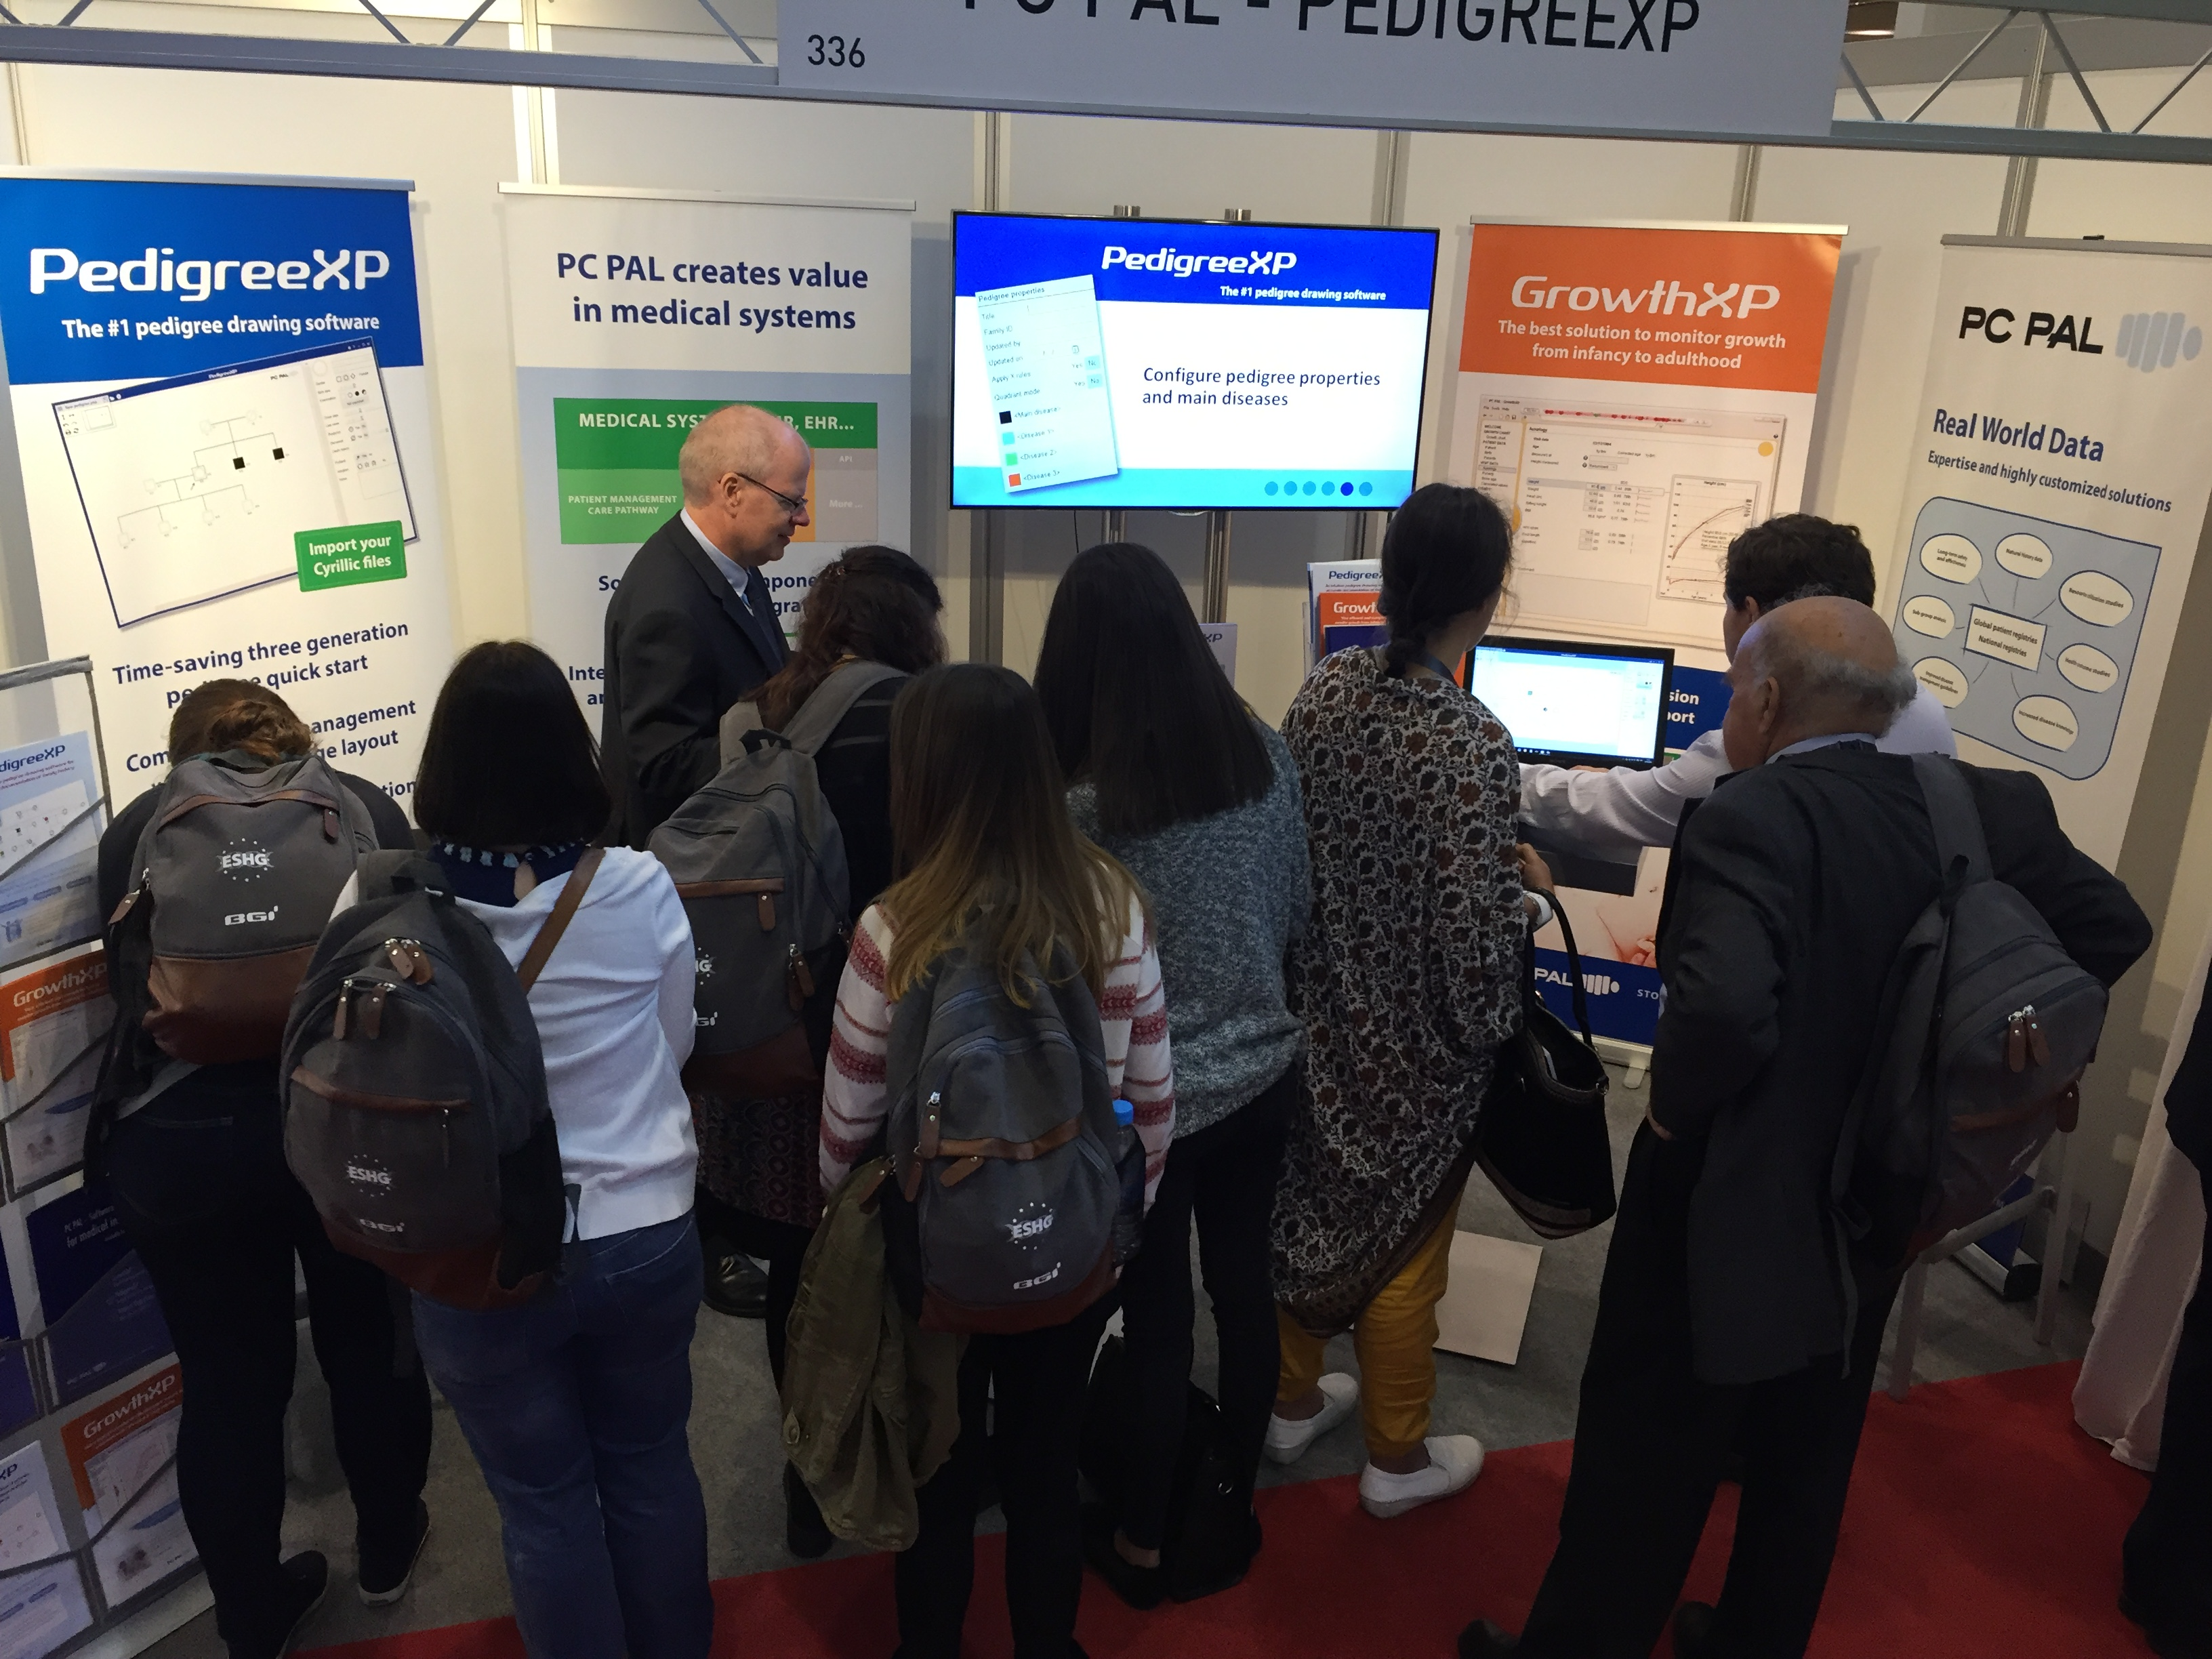 PC PAL booth at ESHG 2016